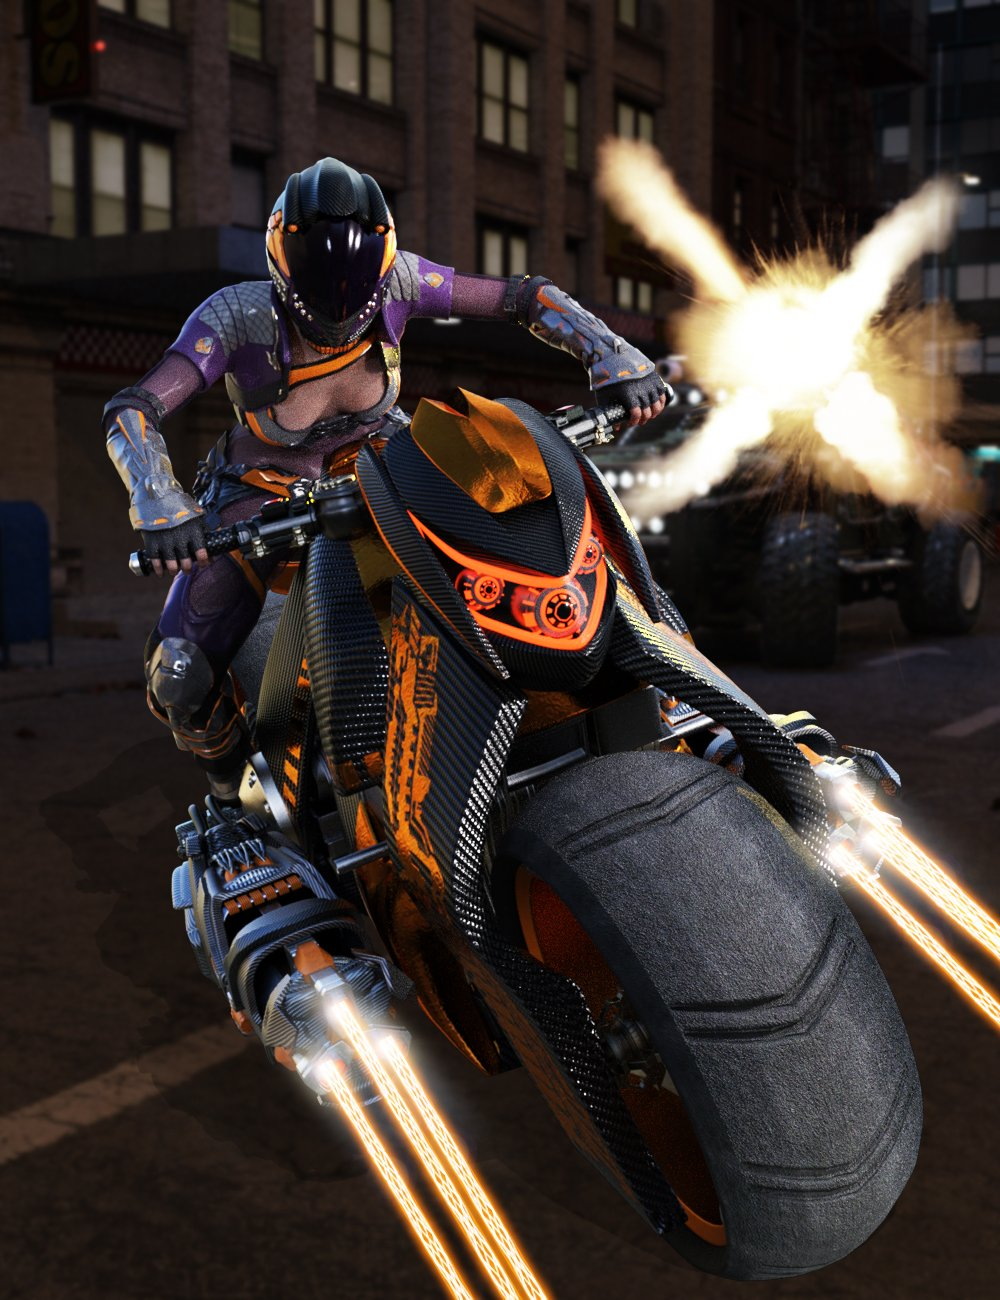 Galactic Racer Motorcycle by: Charlie, 3D Models by Daz 3D